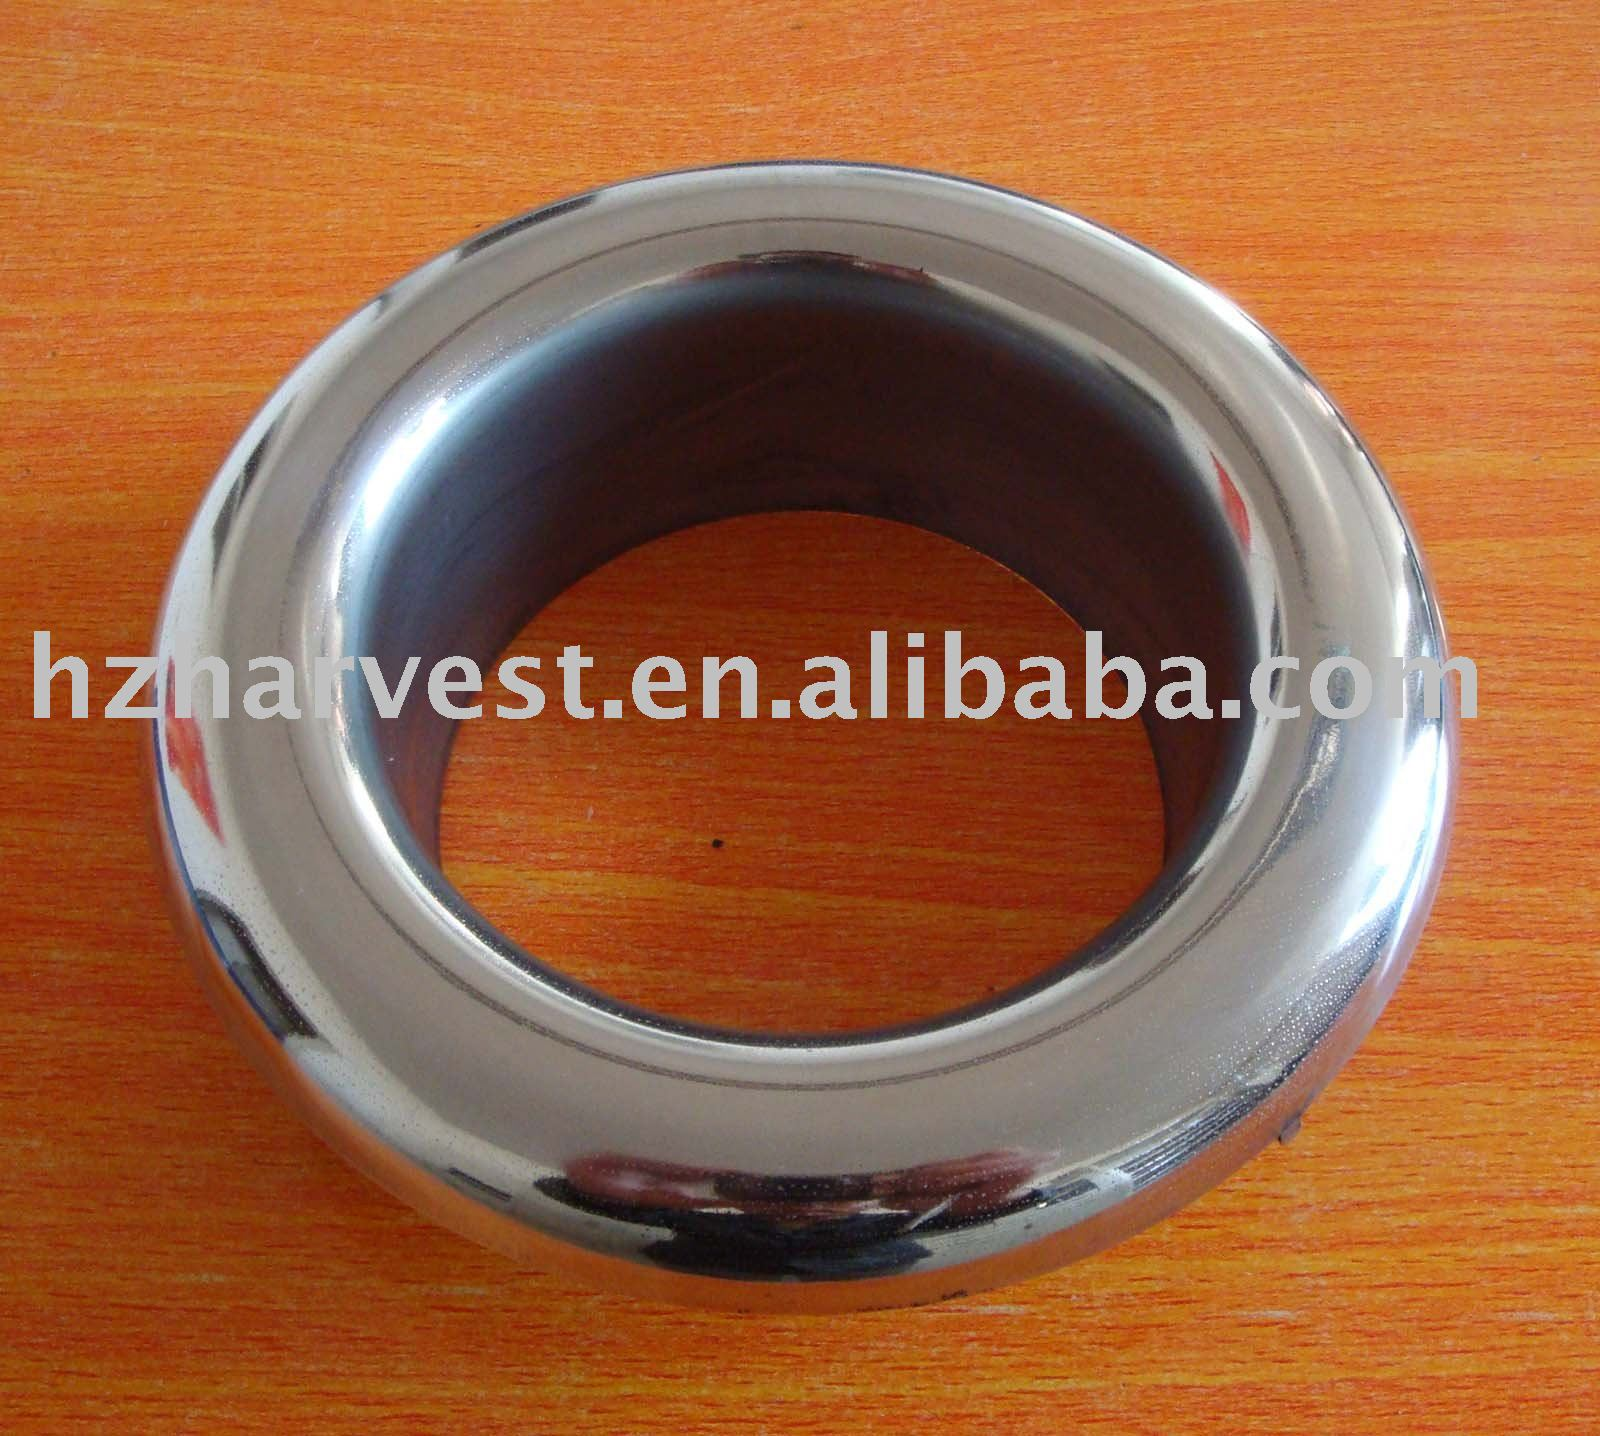 whirlpool jet hardware part waterway jet parts stamping parts pool jet parts